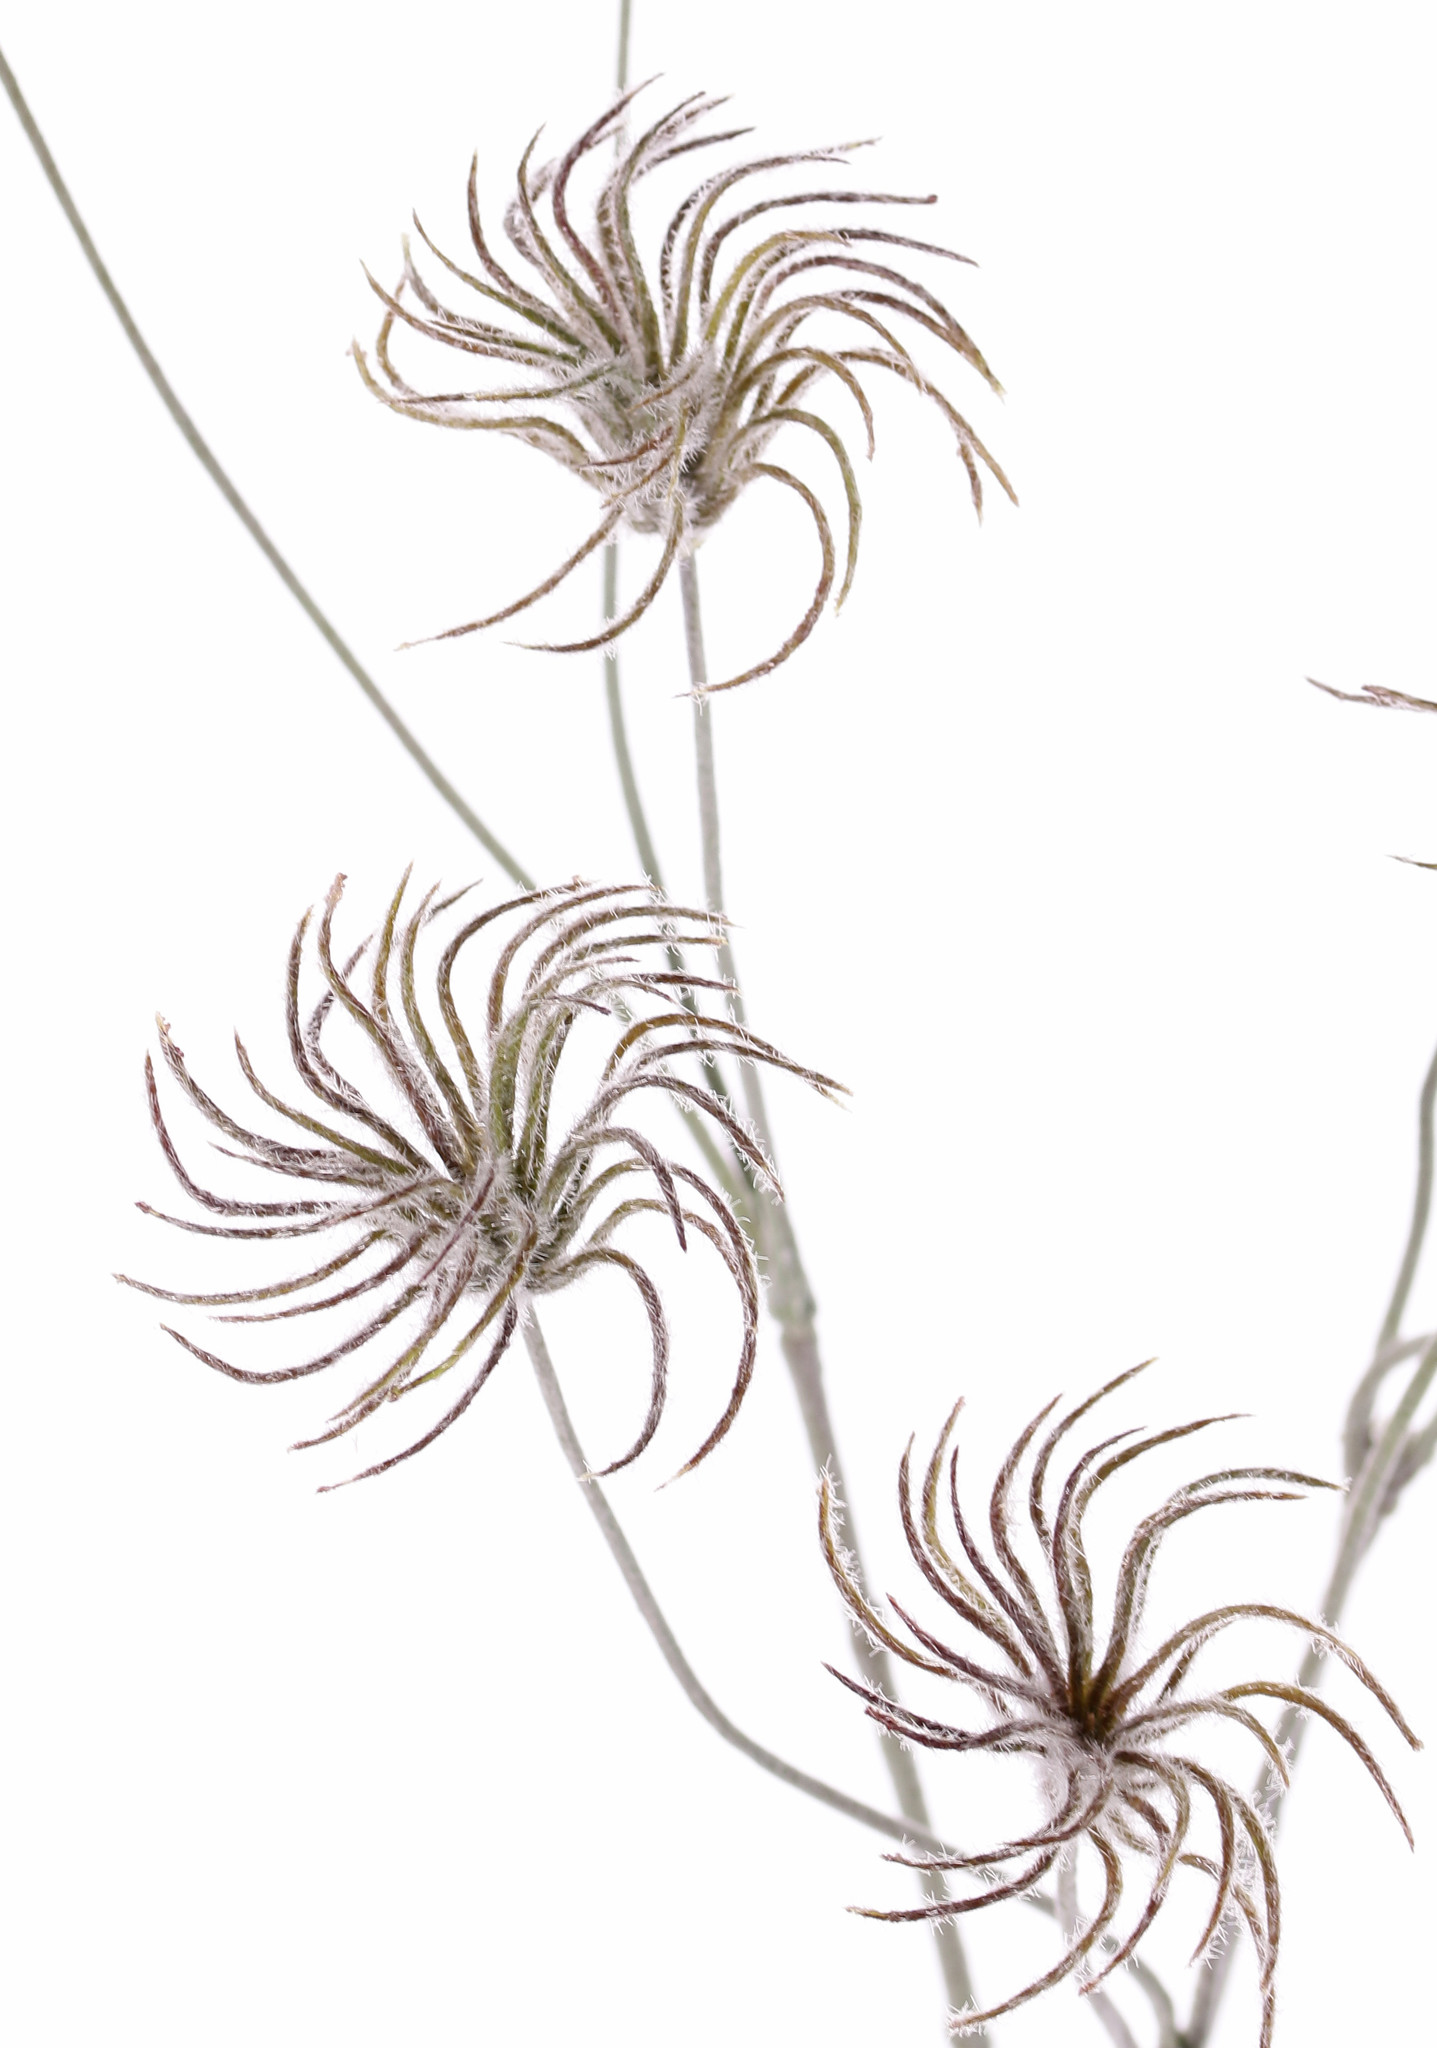 Clematis seeds branch x3, with 9 seeds, no leaf, flocked, 71cm